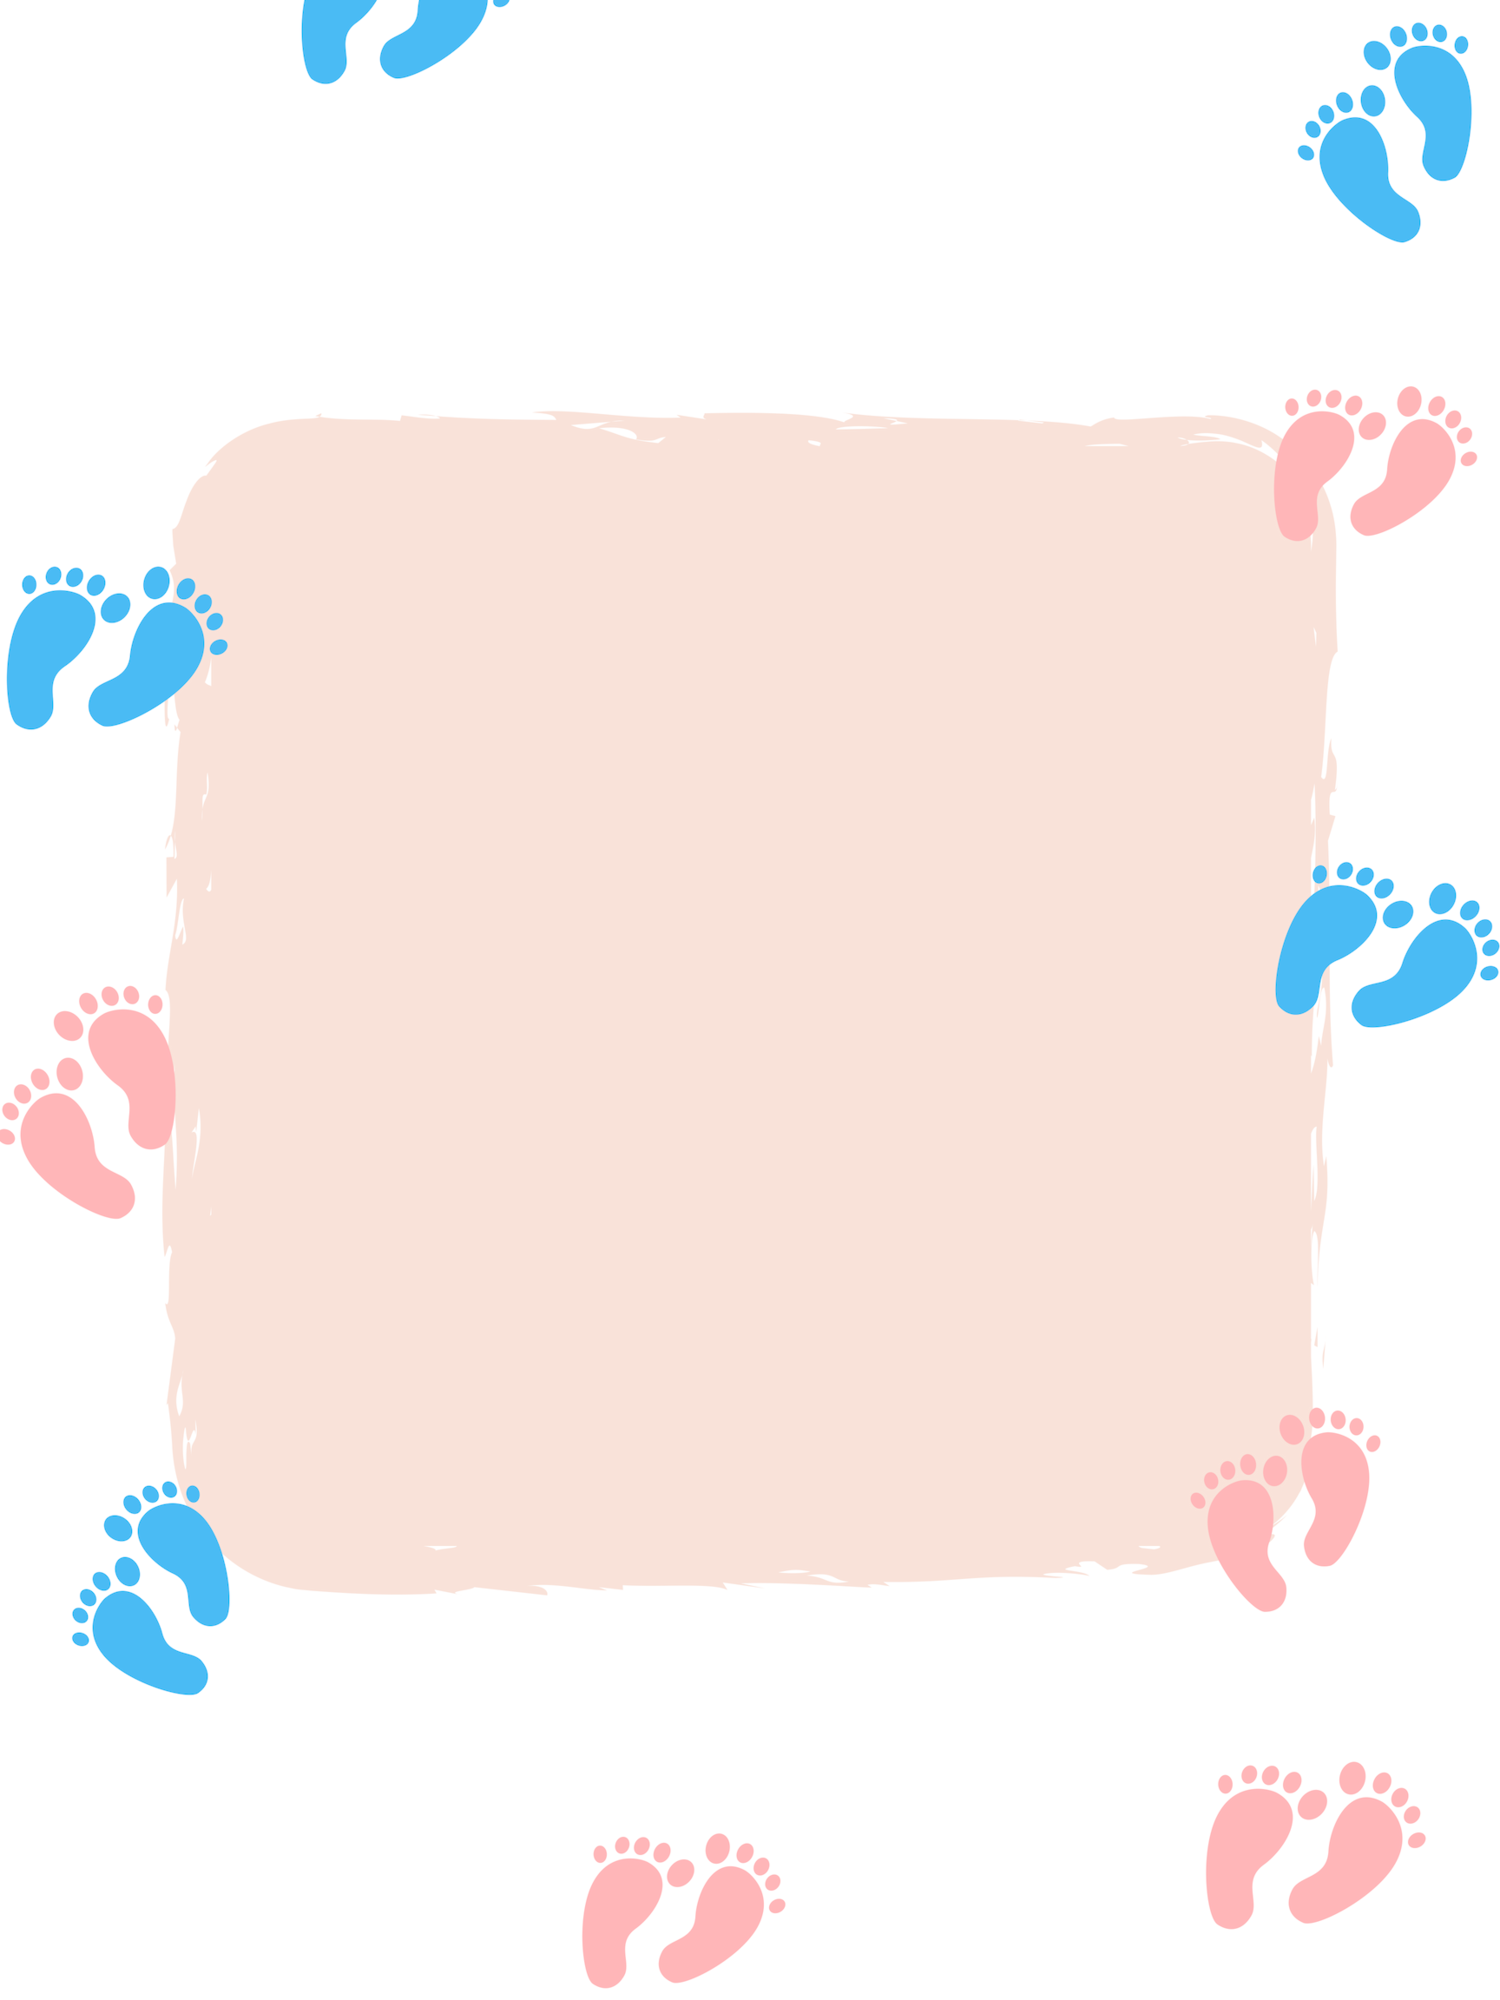 Footsteps clipart far away. Little daycare